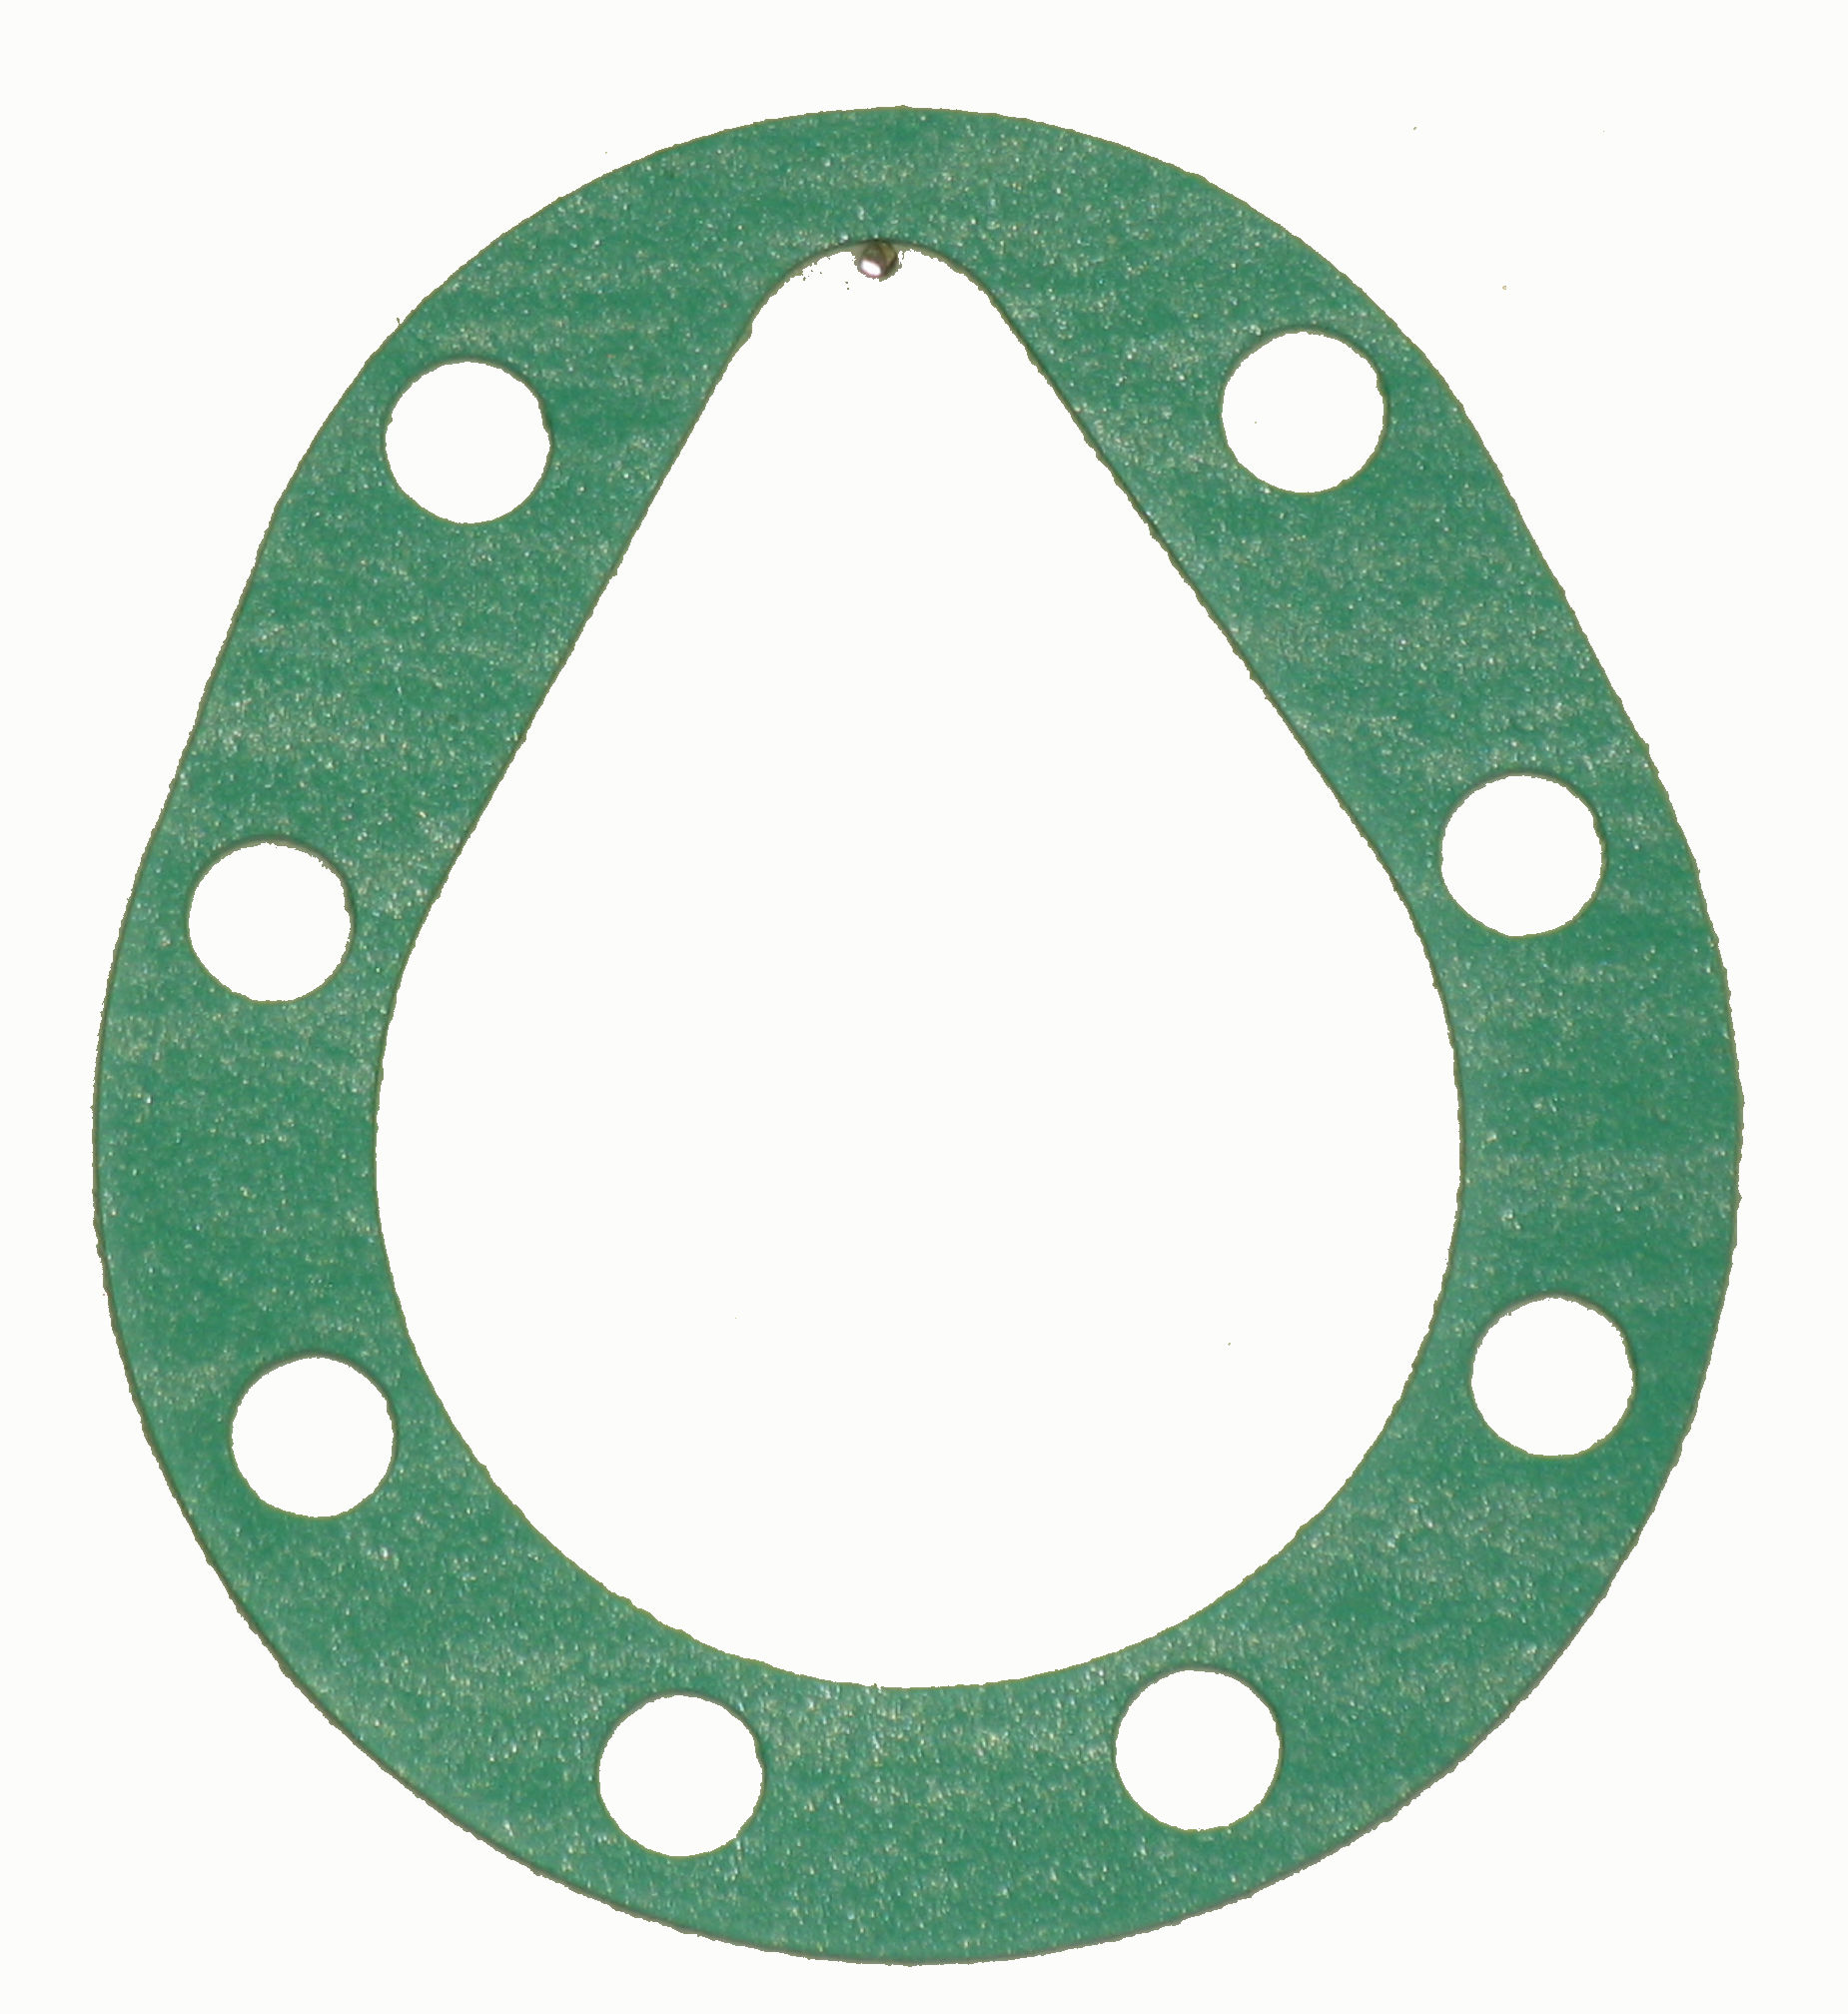 GKT-6350 Gasket; R/N GKT-956 (Made in the USA)